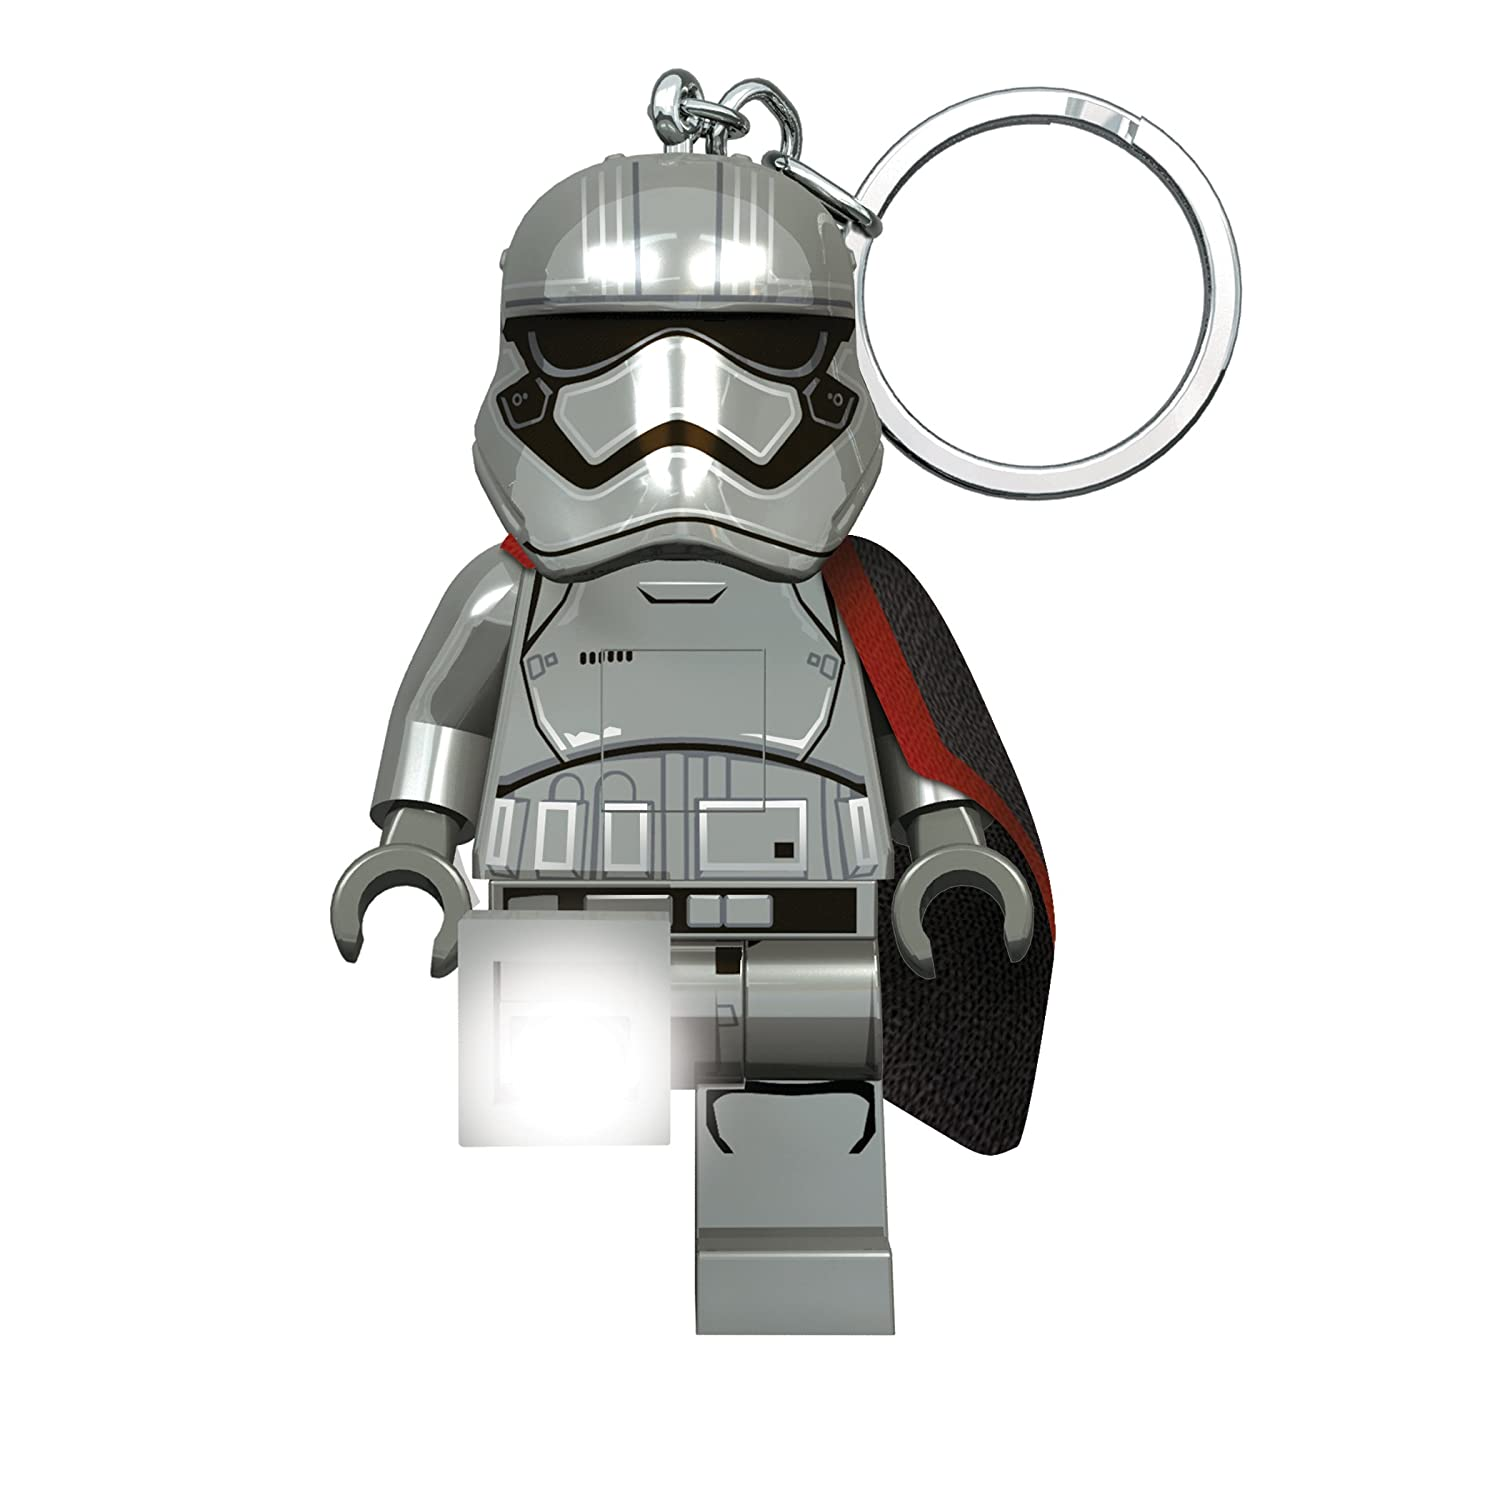 LEGO Star Wars: The Last Jedi - Captain Phasma LED Key Chain Flashlight